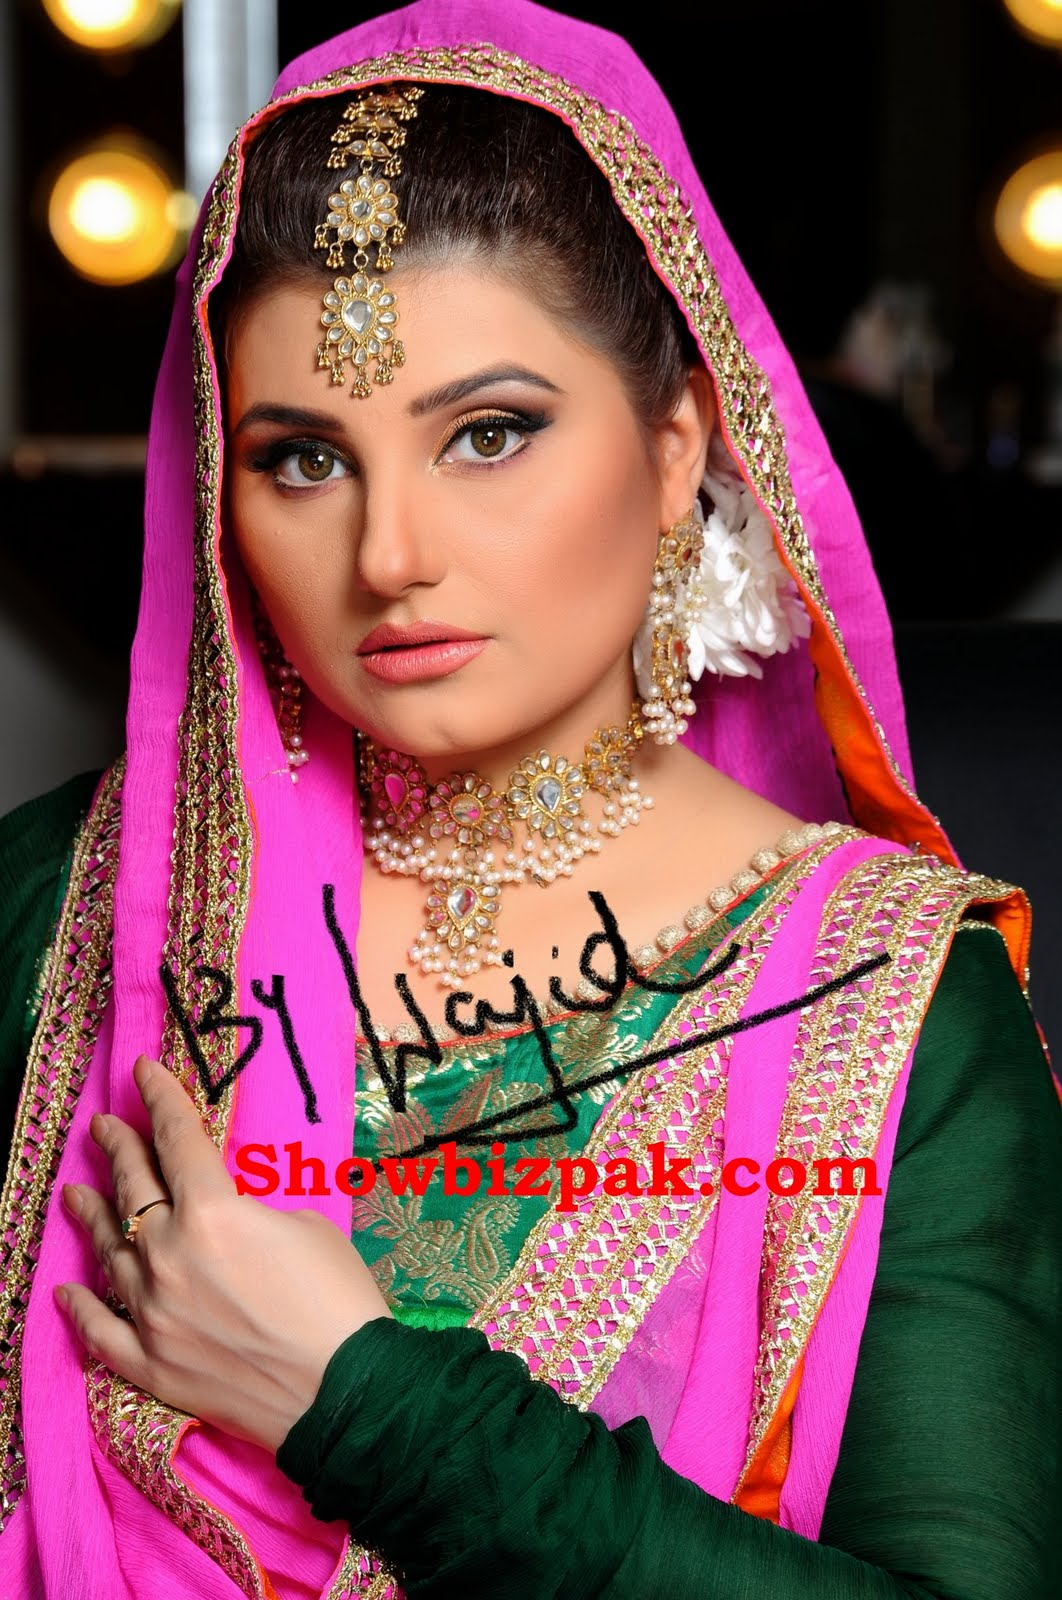 pakistani showbiz blog  javeria saud